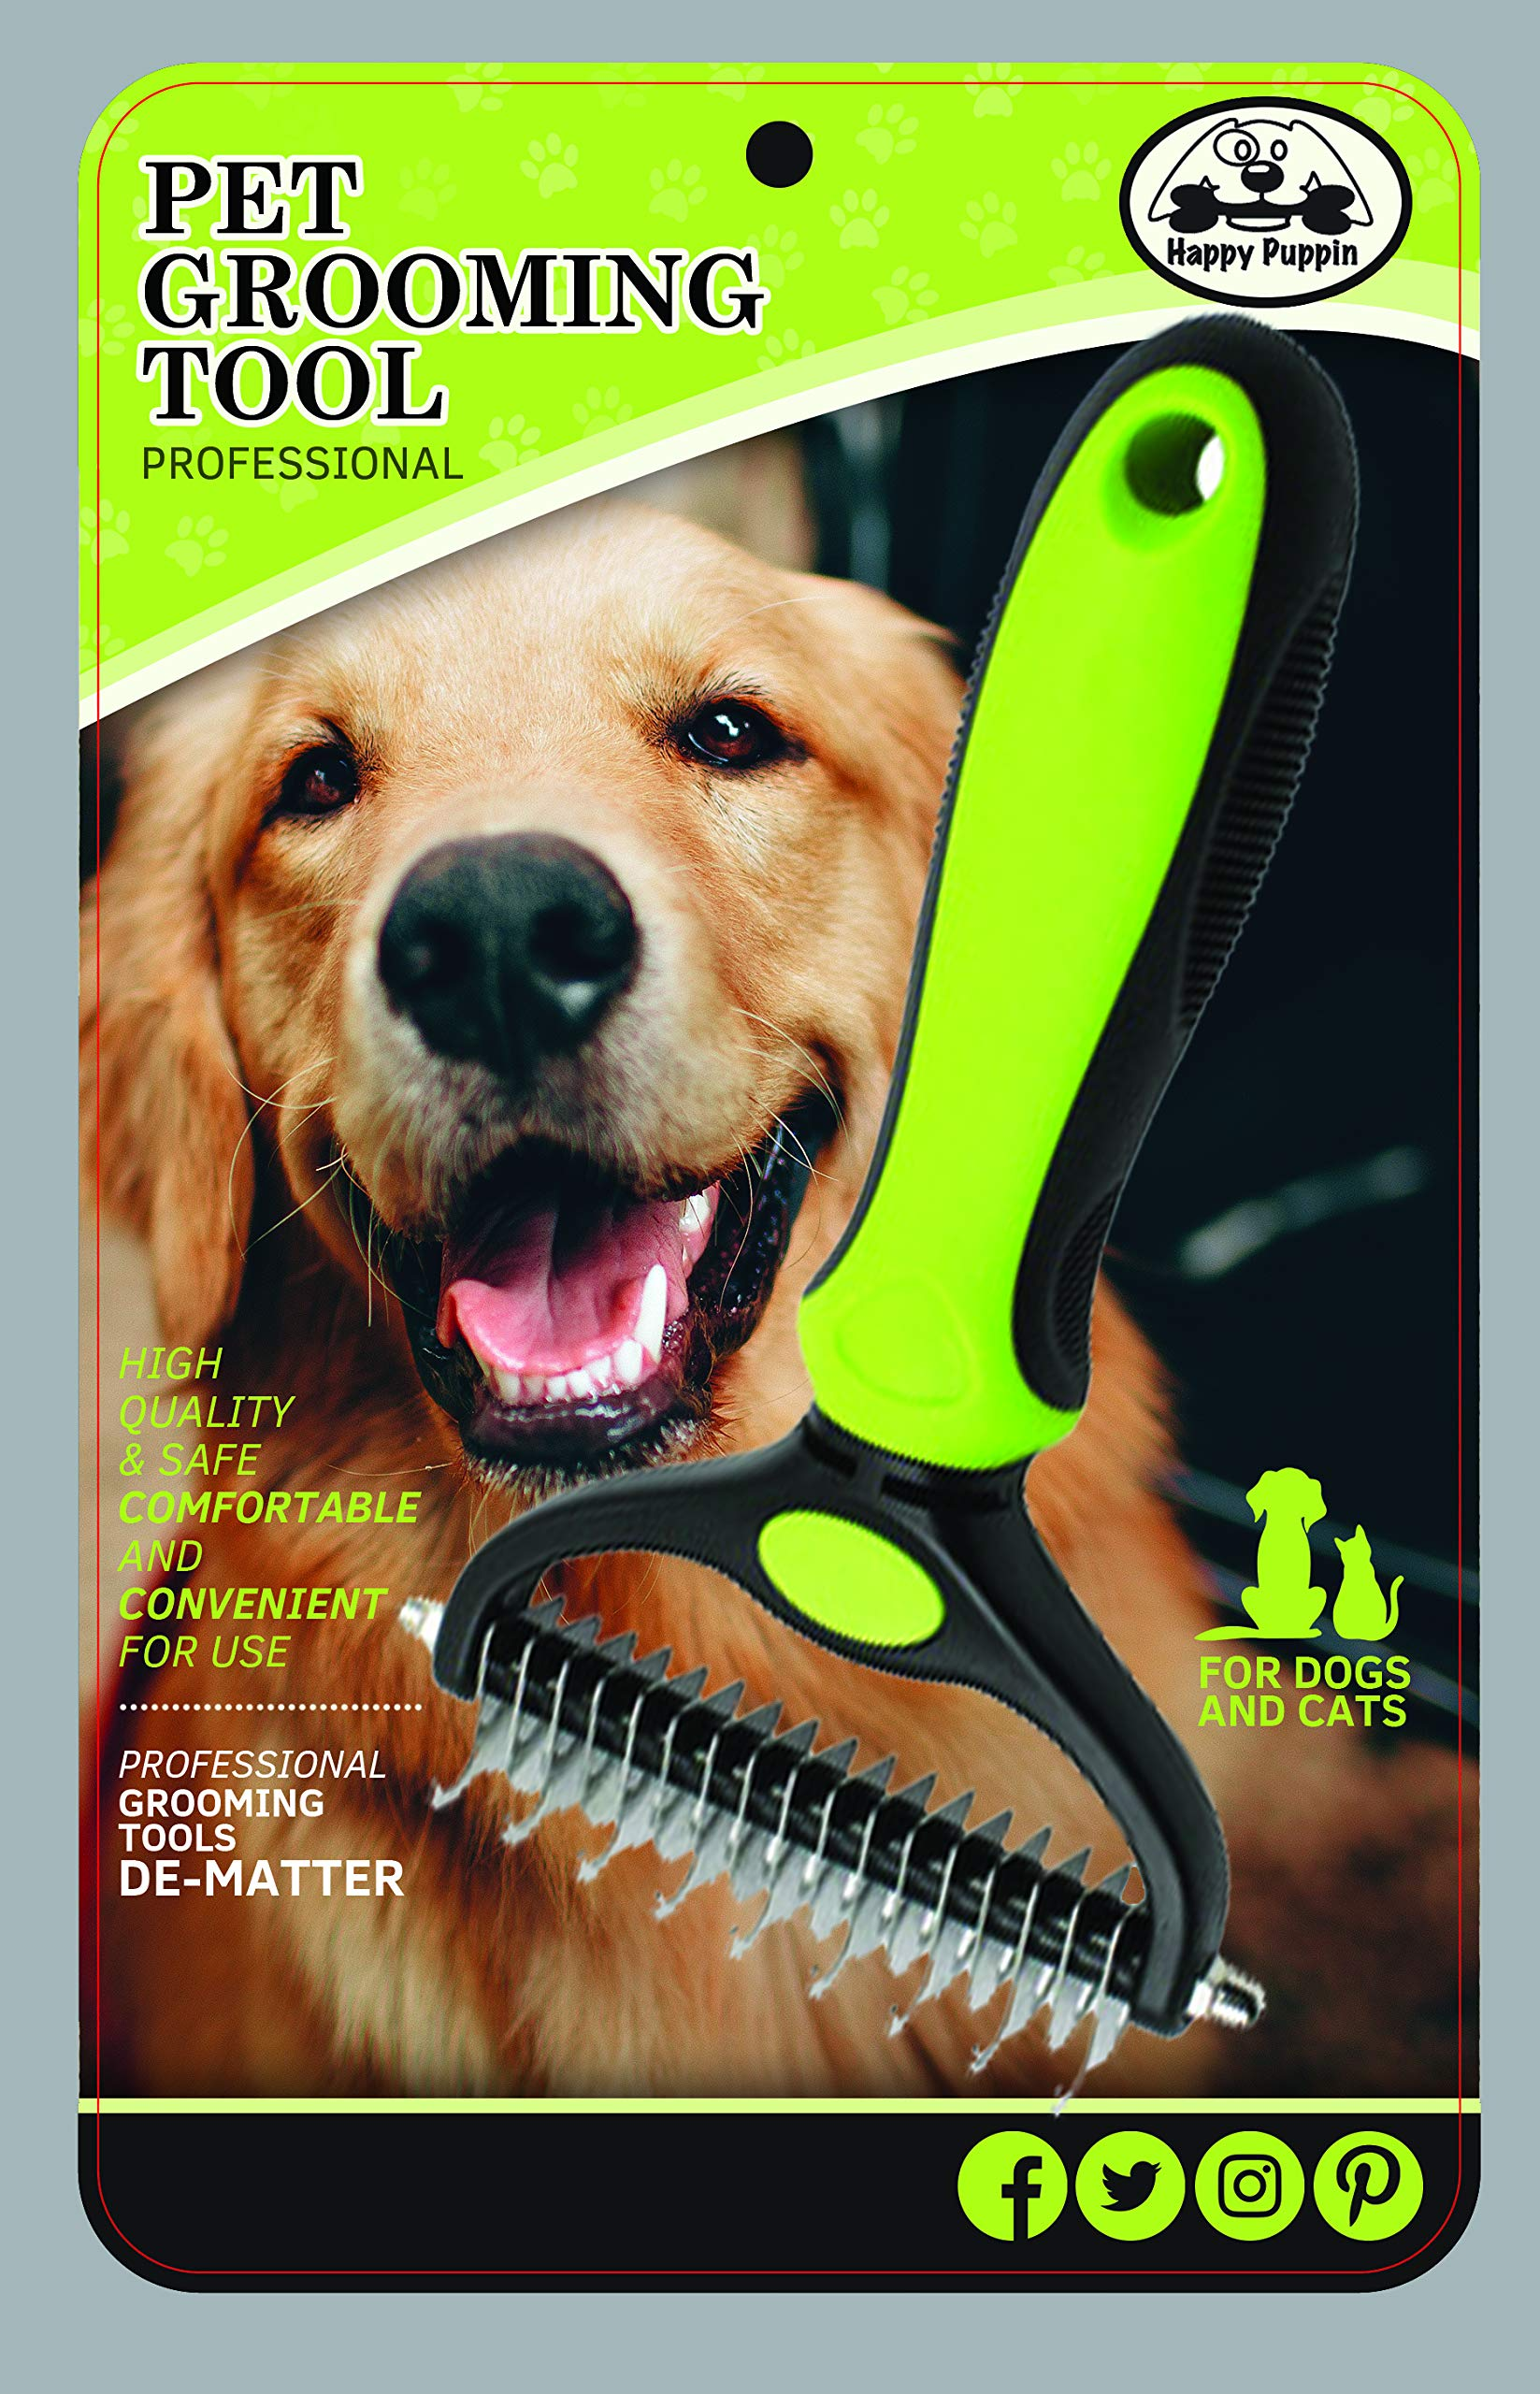 Happy Puppin Professional Double Sided Grooming Tool for Dogs and Cats Reduces Shedding by up to 90% Strong and Durable Handle Comfortable for Your Pet